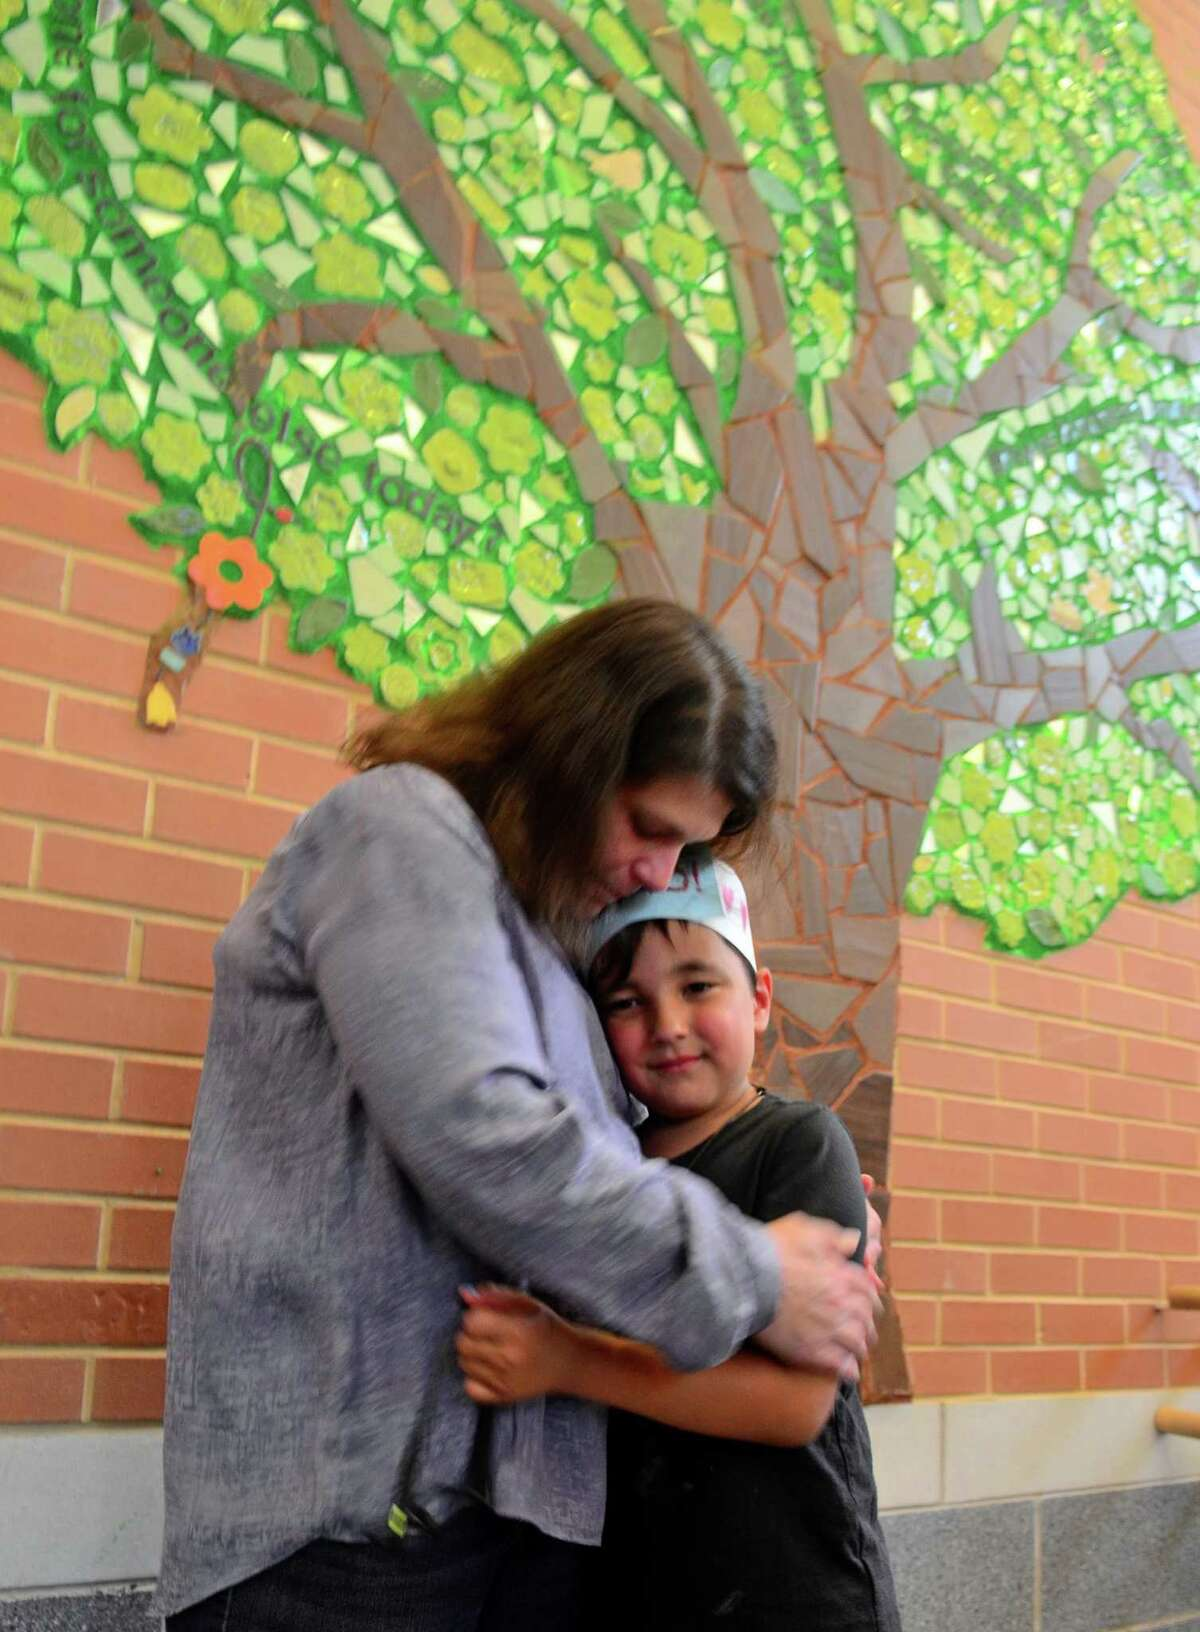 """Student Shane Moonesar, 6, gets a hug from Jane Adams from Ben's Bells after the Kindness Club's Kindness Tree mural was unveiled at Frenchtown Elementary School in Trumbull, Conn., on Tuesday May 21, 2019. Ben's Bells """"be kind"""" murals are a series of kindness-themed mosaic murals created by local artists, students, and community members. Shane was one of the helpers to Jane in the making of the mural with many of his fellow students."""